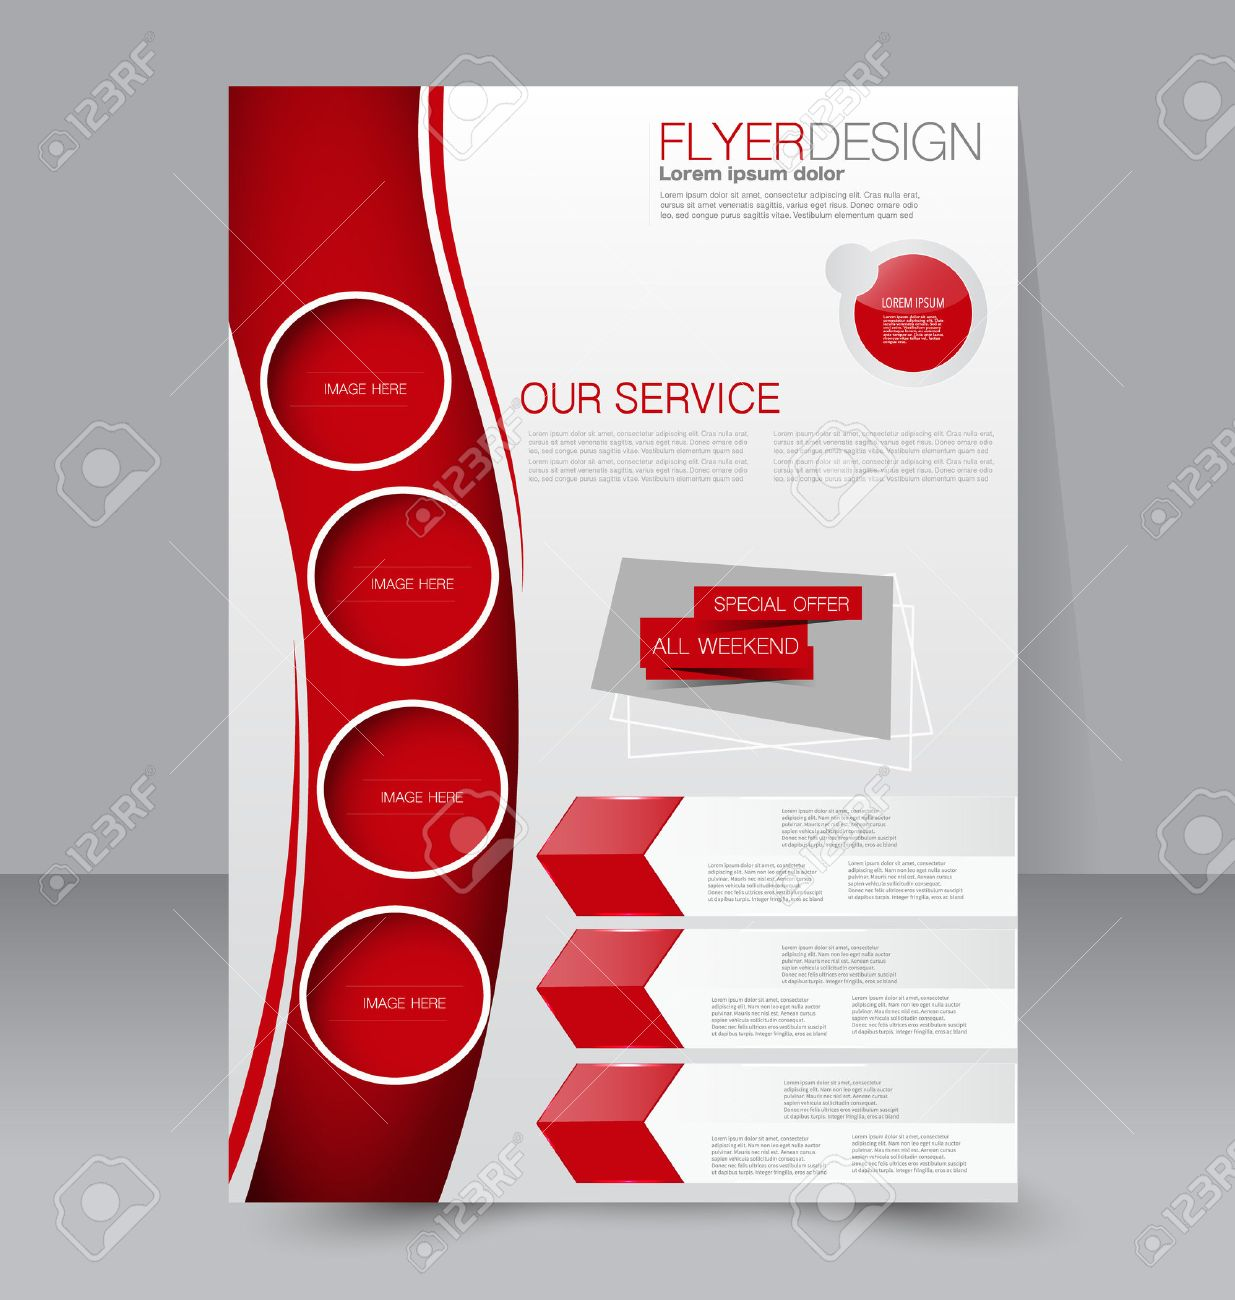 Flyer template business brochure editable a4 poster for design flyer template business brochure editable a4 poster for design education presentation accmission Images